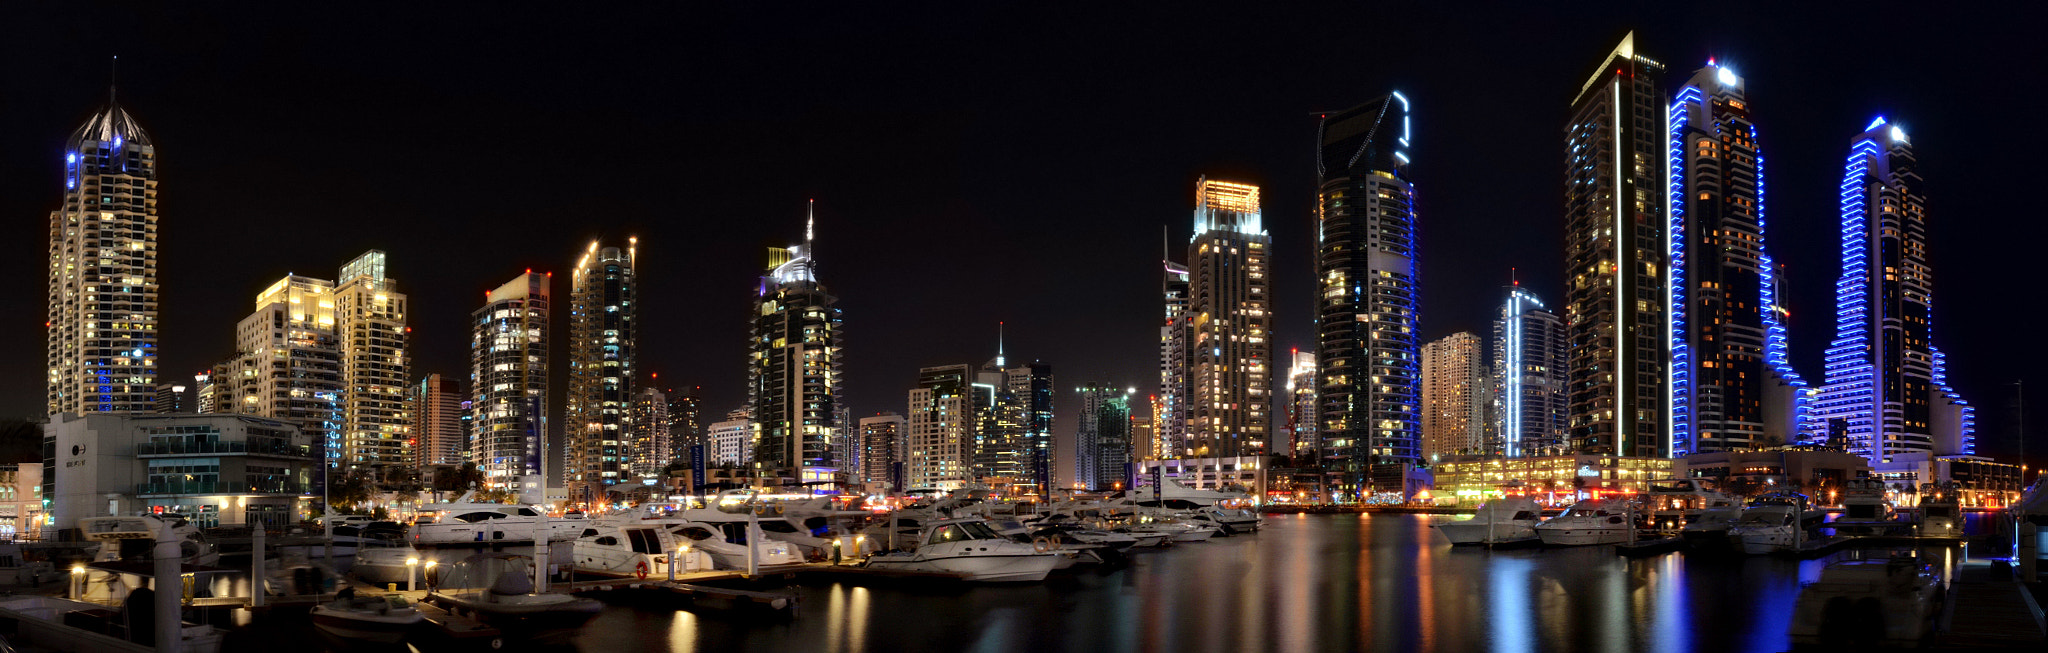 Photograph Dubai Marina Panorama by MOhab Karram on 500px